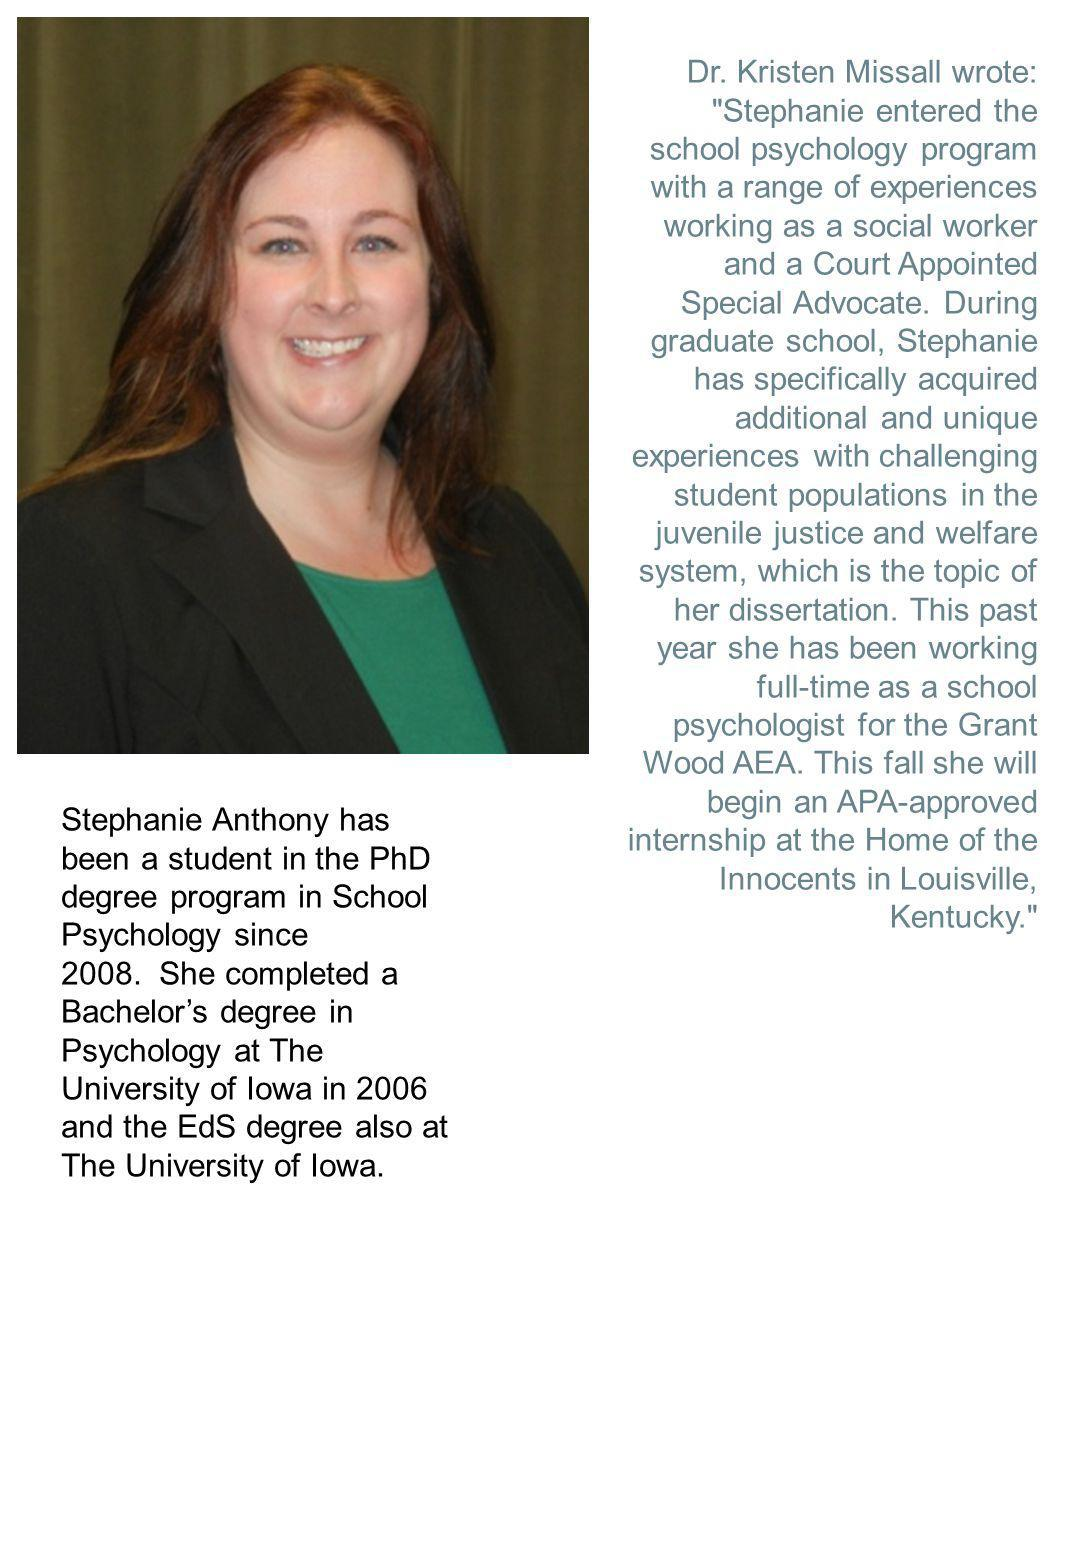 Dr. Kristen Missall wrote: Stephanie entered the school psychology program with a range of experiences working as a social worker and a Court Appointed Special Advocate. During graduate school, Stephanie has specifically acquired additional and unique experiences with challenging student populations in the juvenile justice and welfare system, which is the topic of her dissertation. This past year she has been working full-time as a school psychologist for the Grant Wood AEA. This fall she will begin an APA-approved internship at the Home of the Innocents in Louisville, Kentucky.